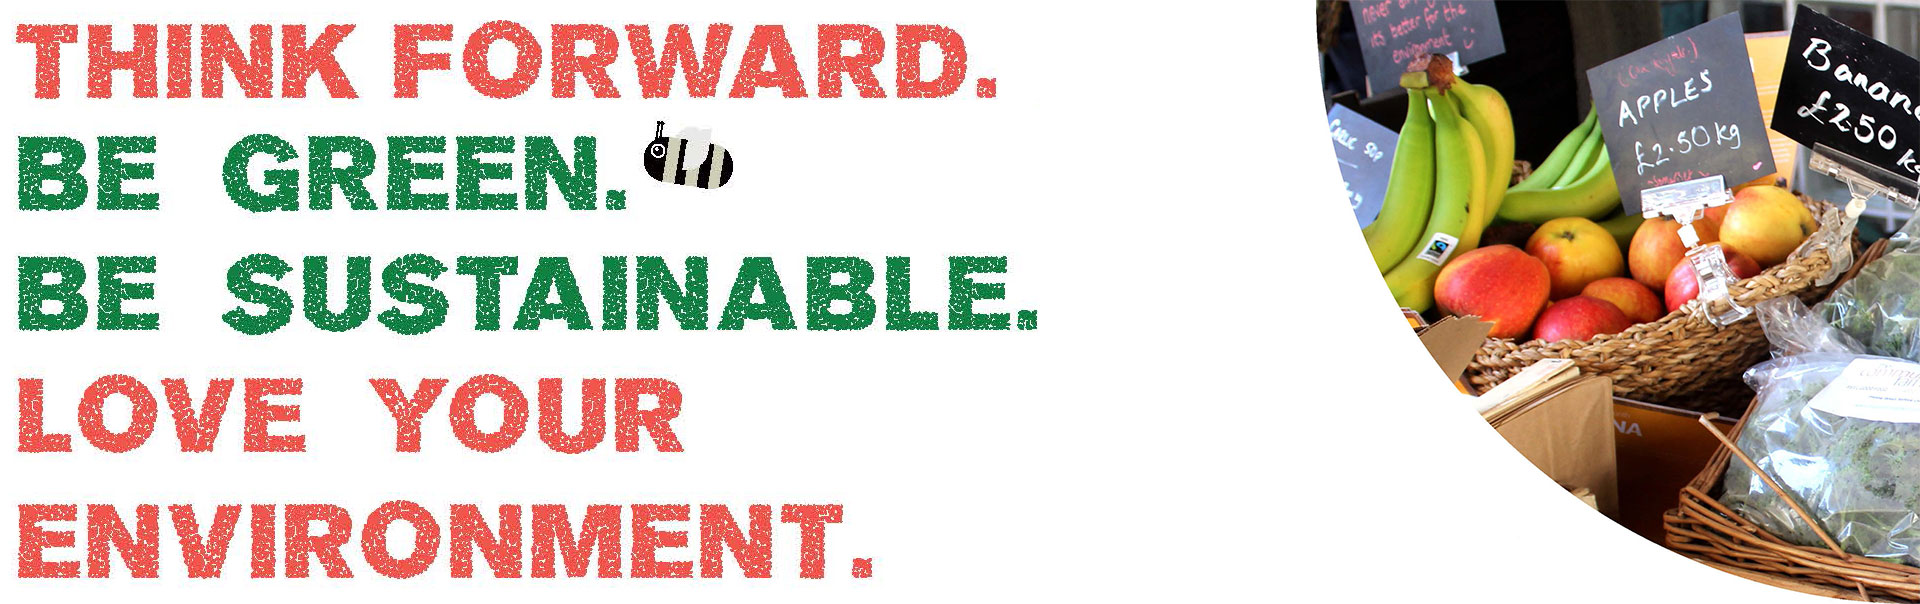 Think Forward. Be Green. Be Sustainable. Love Your Environment.